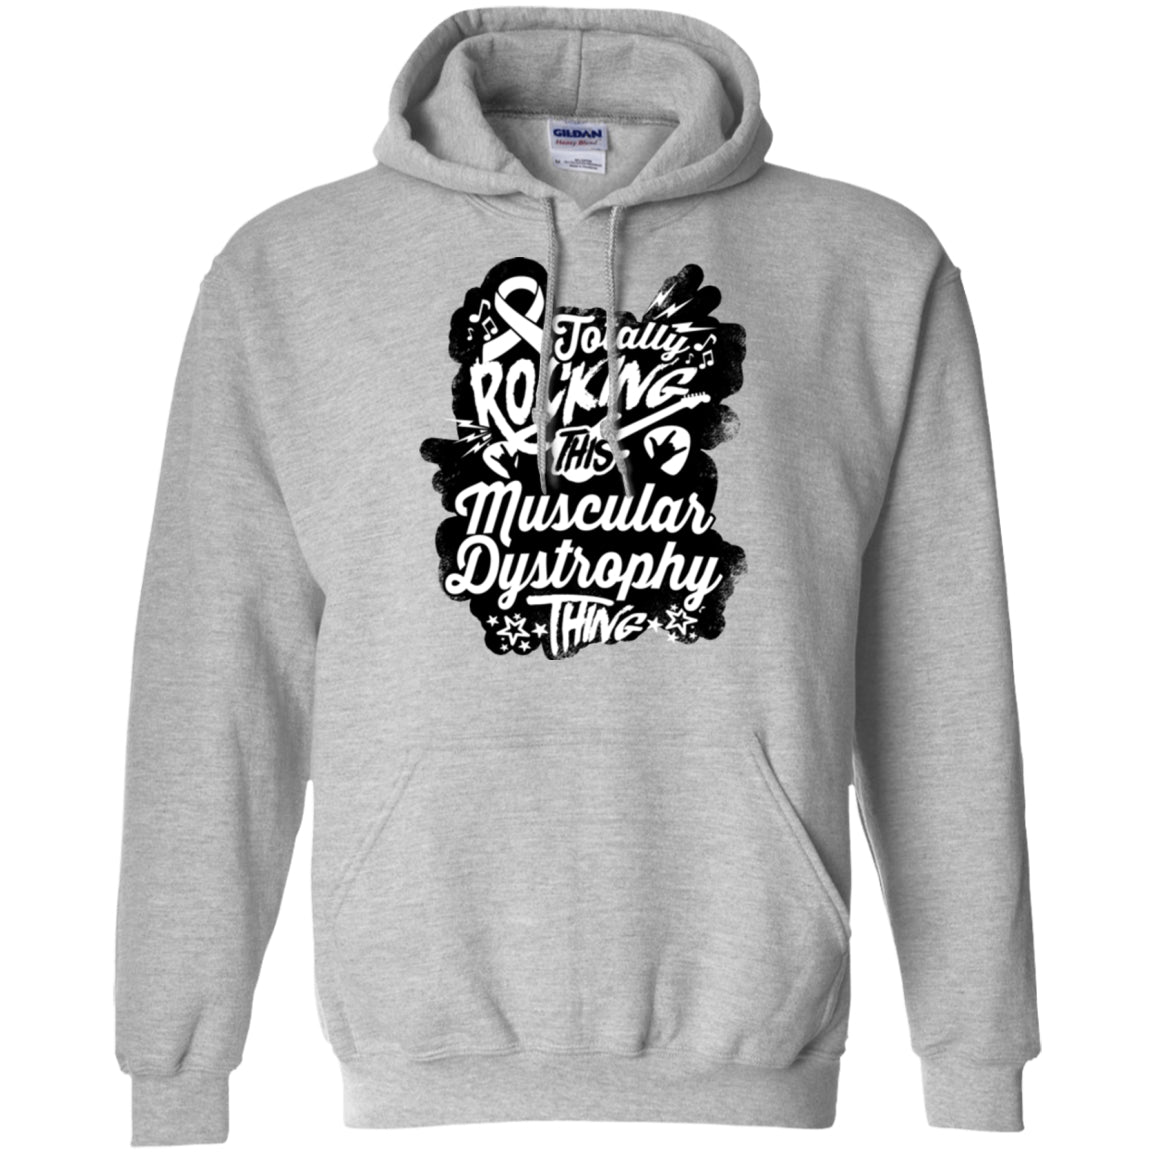 Rocking Muscular Dystrophy Pullover Hoodie 8 oz. - The Unchargeables